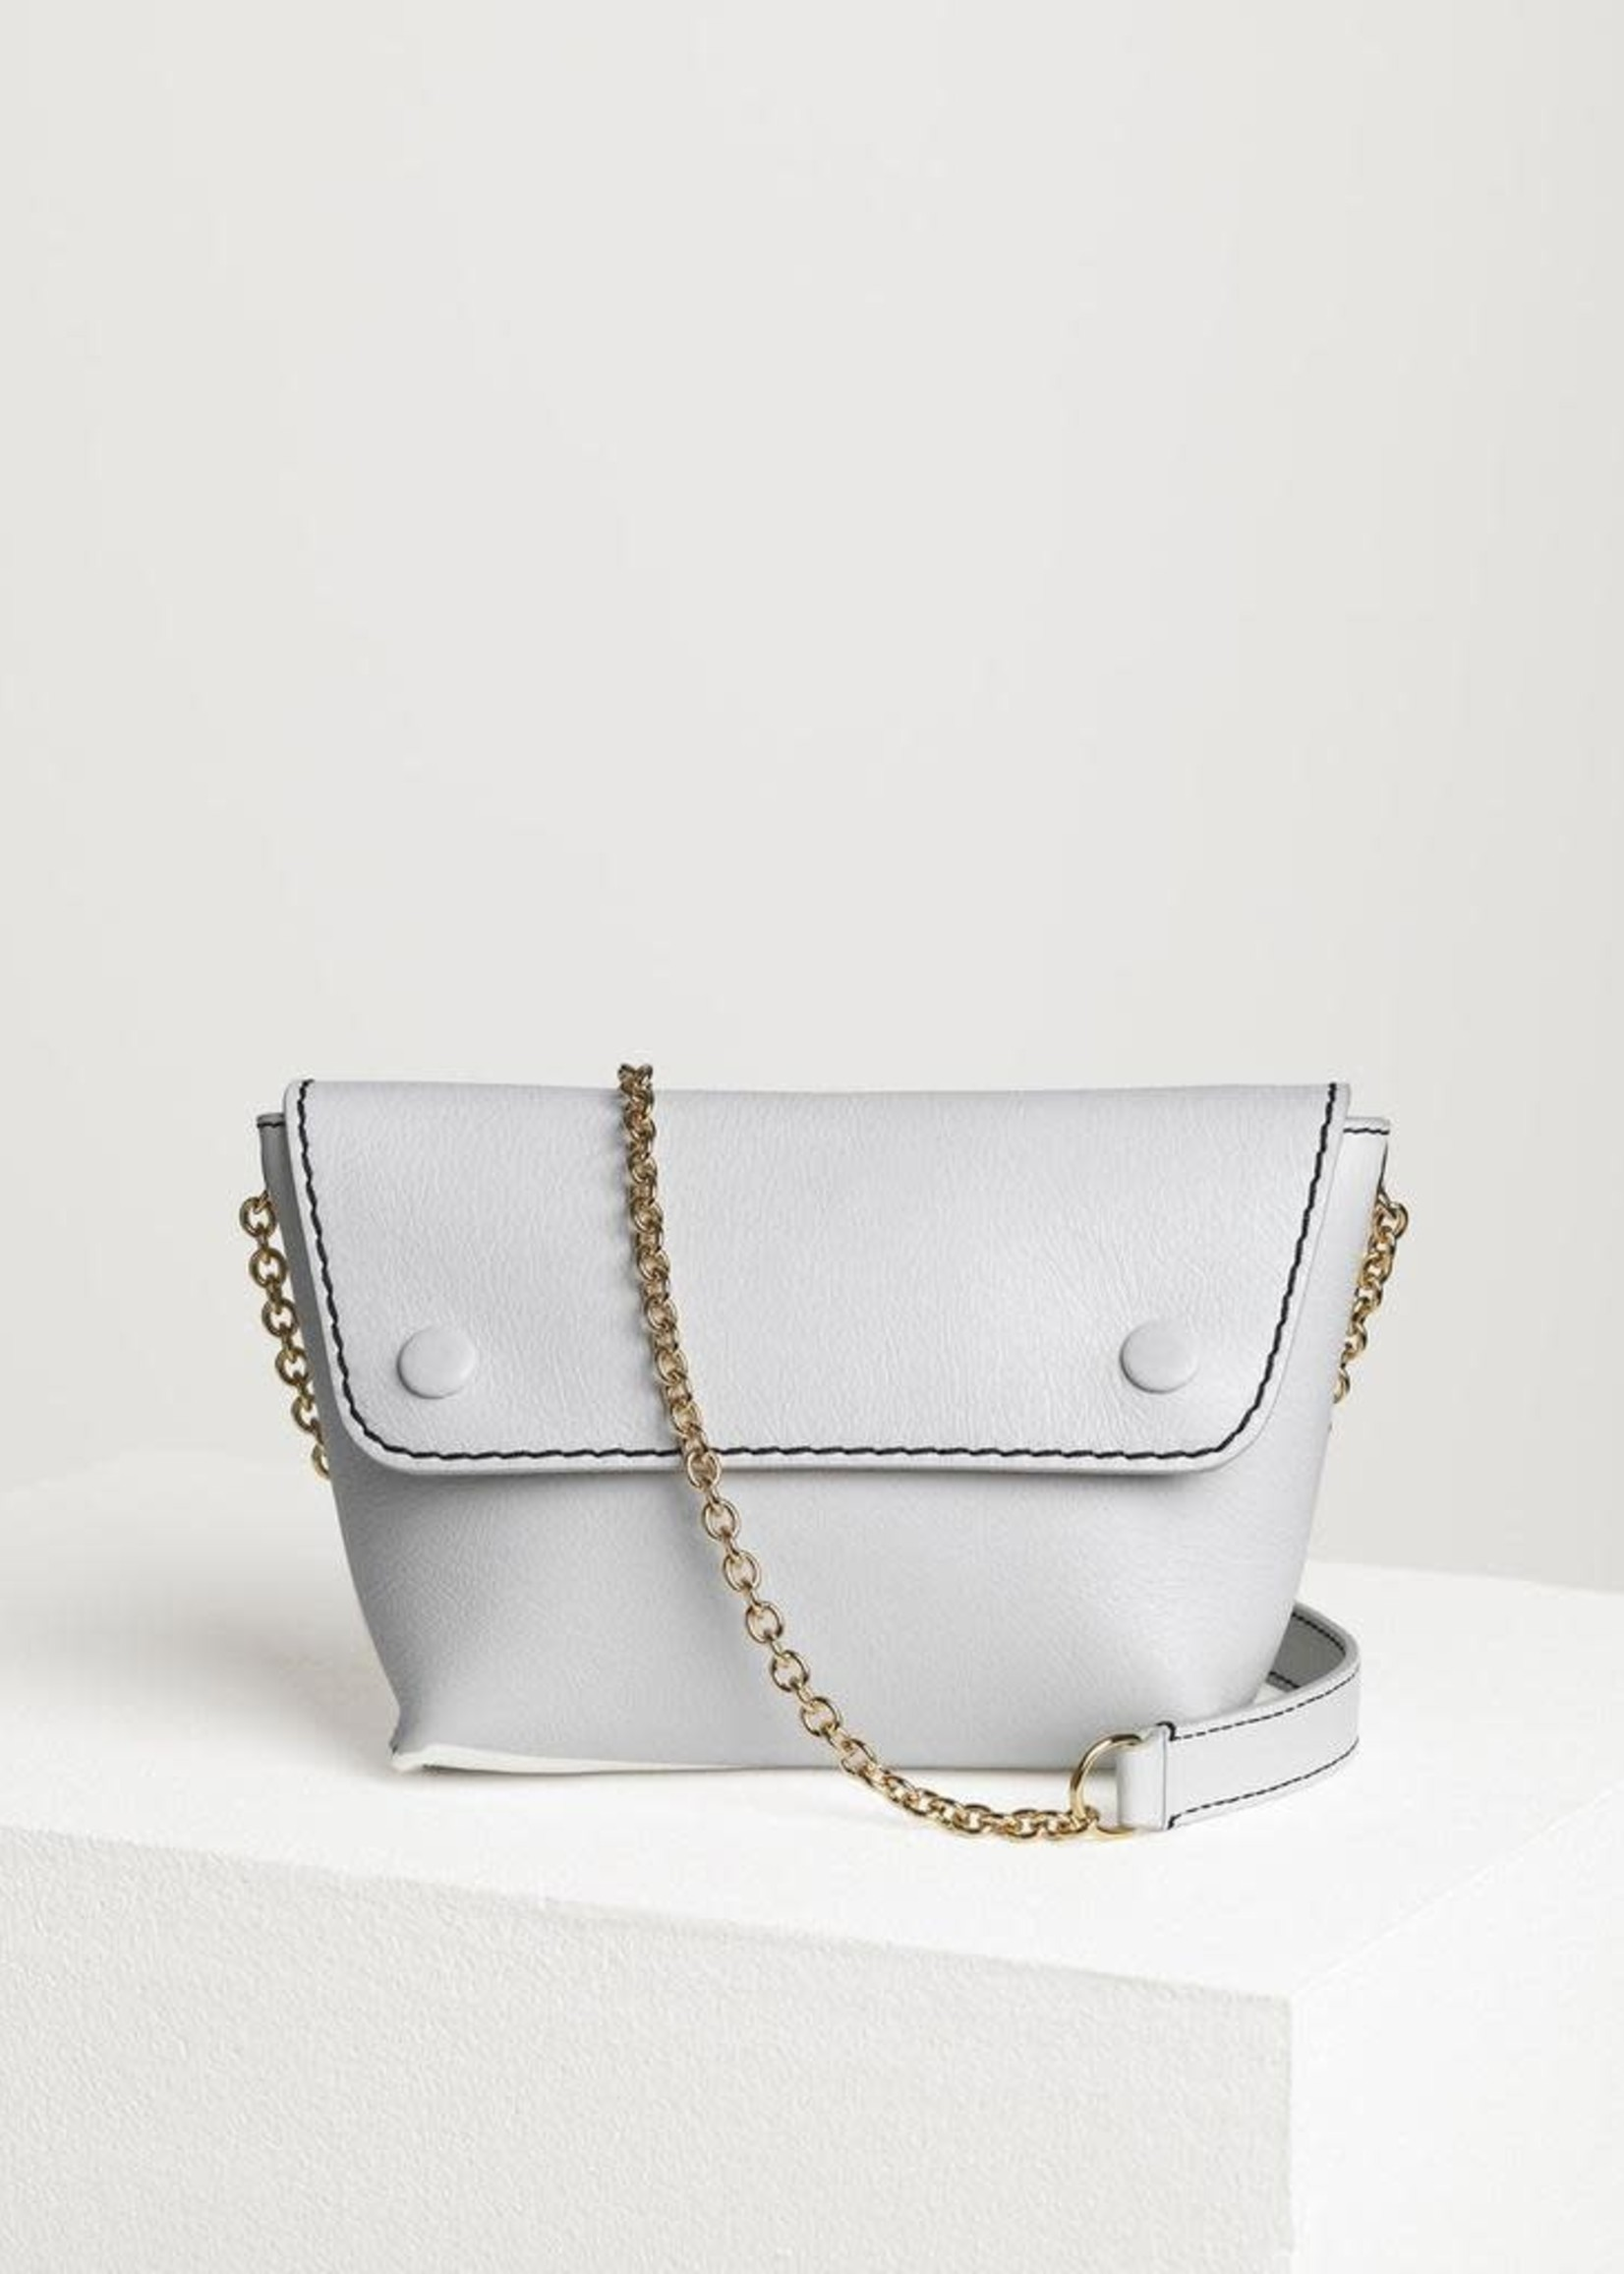 BY MALENE BIRGER WHITE COW LEATHER BAG